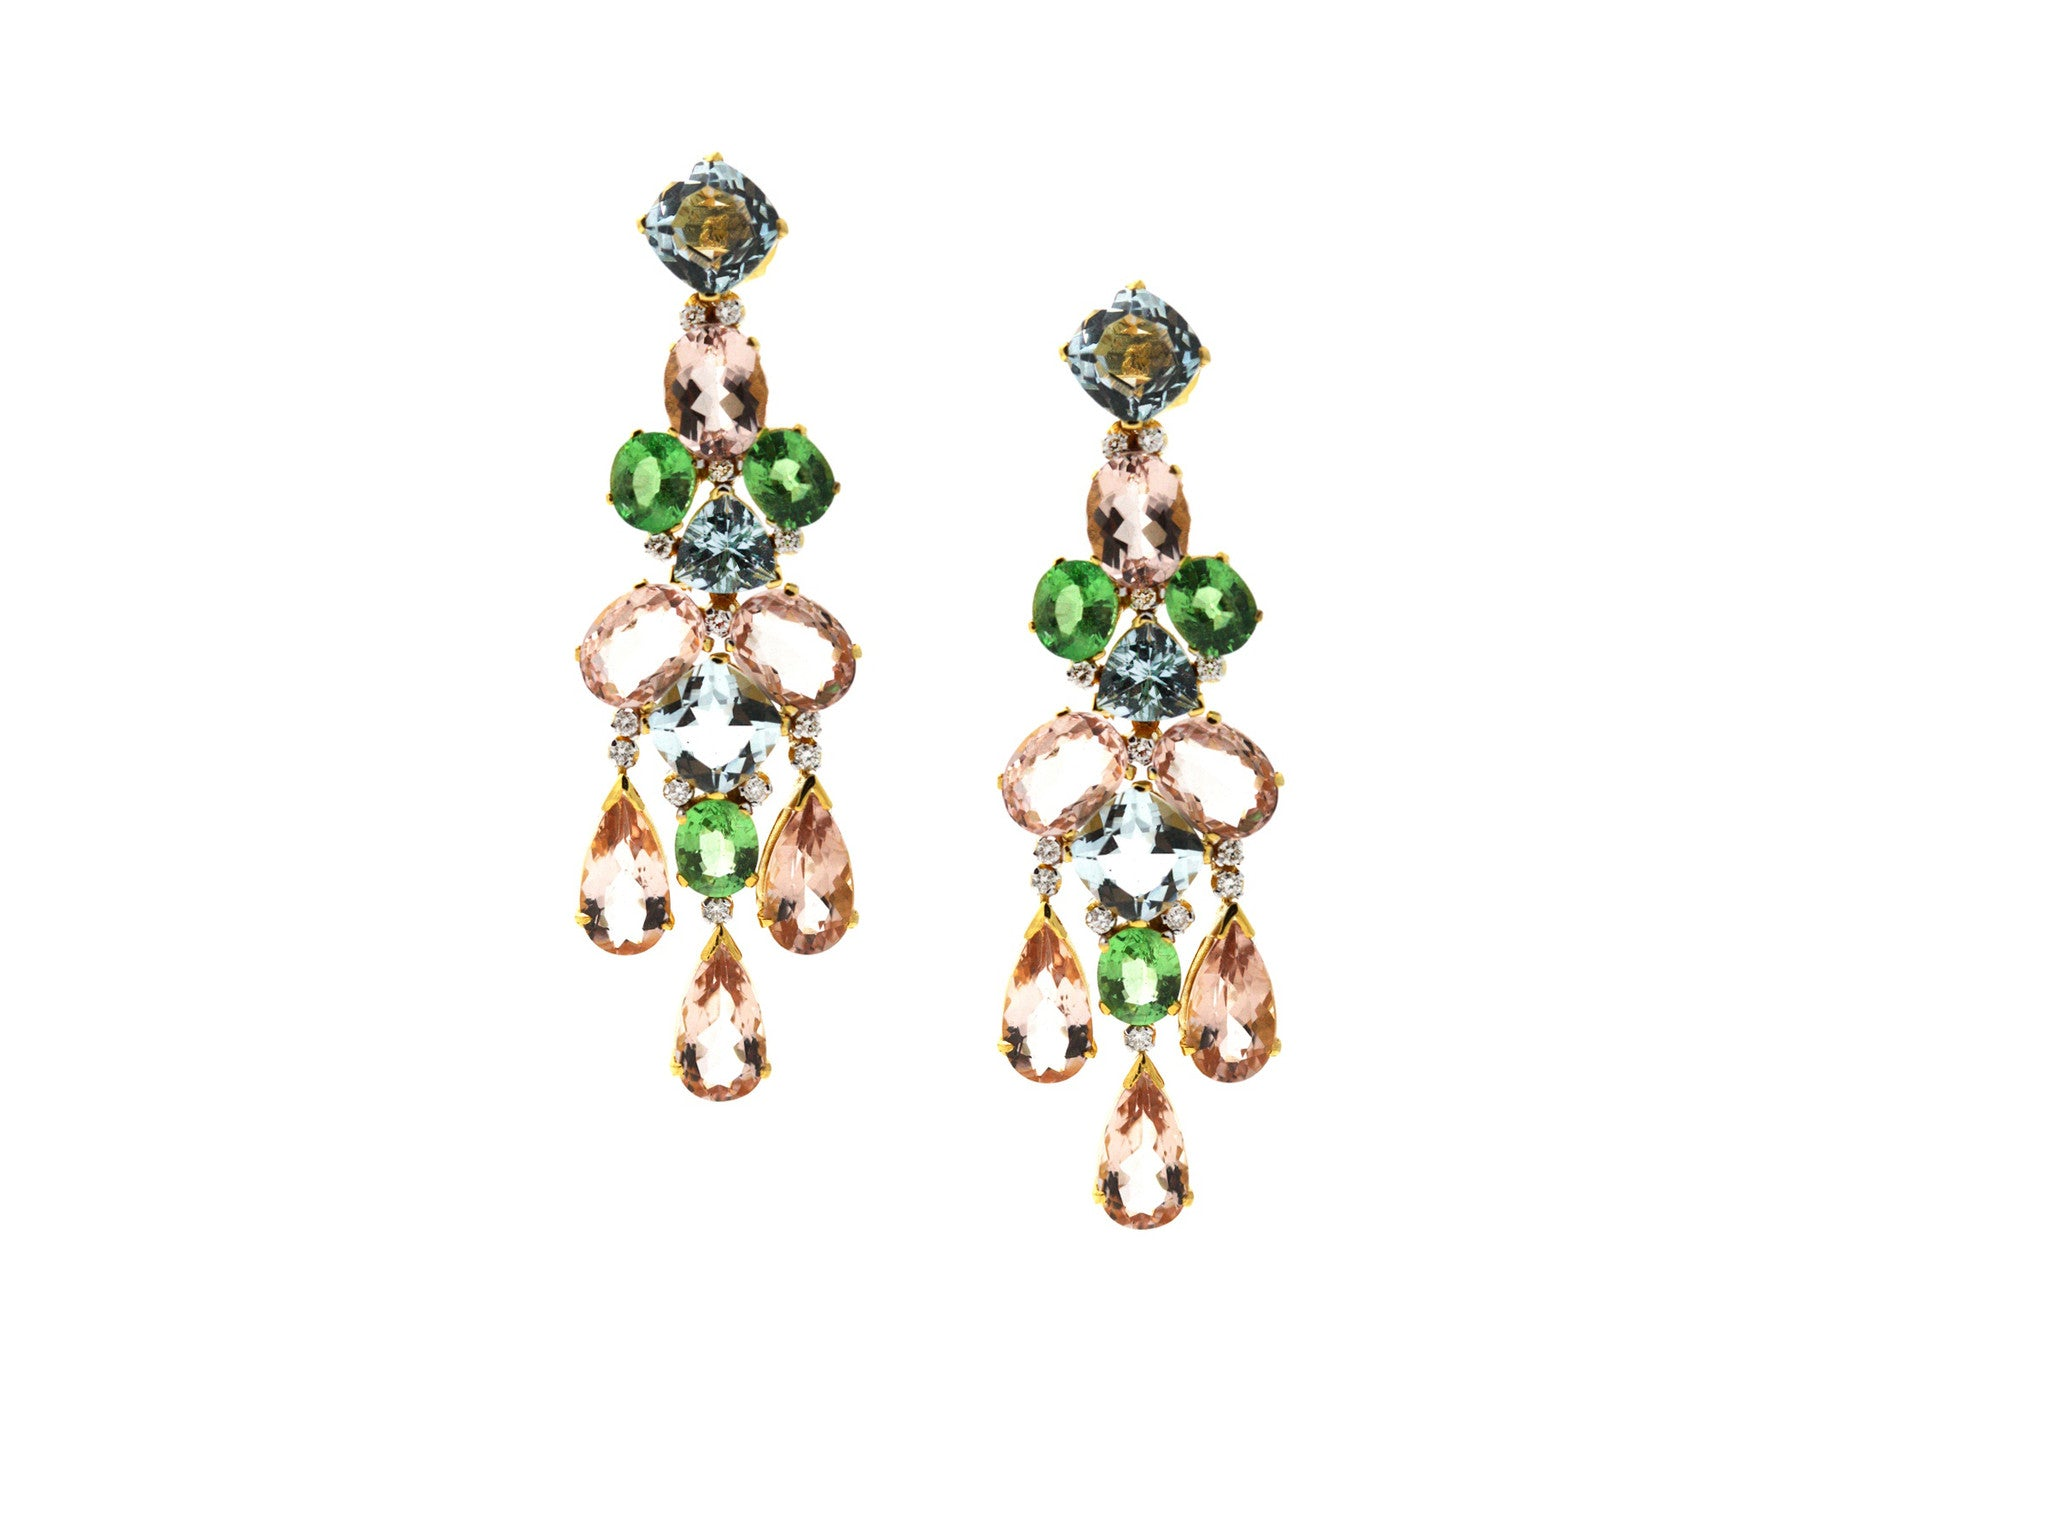 18K Yellow Gold, Multicolor Sapphire and Diamond Earrings